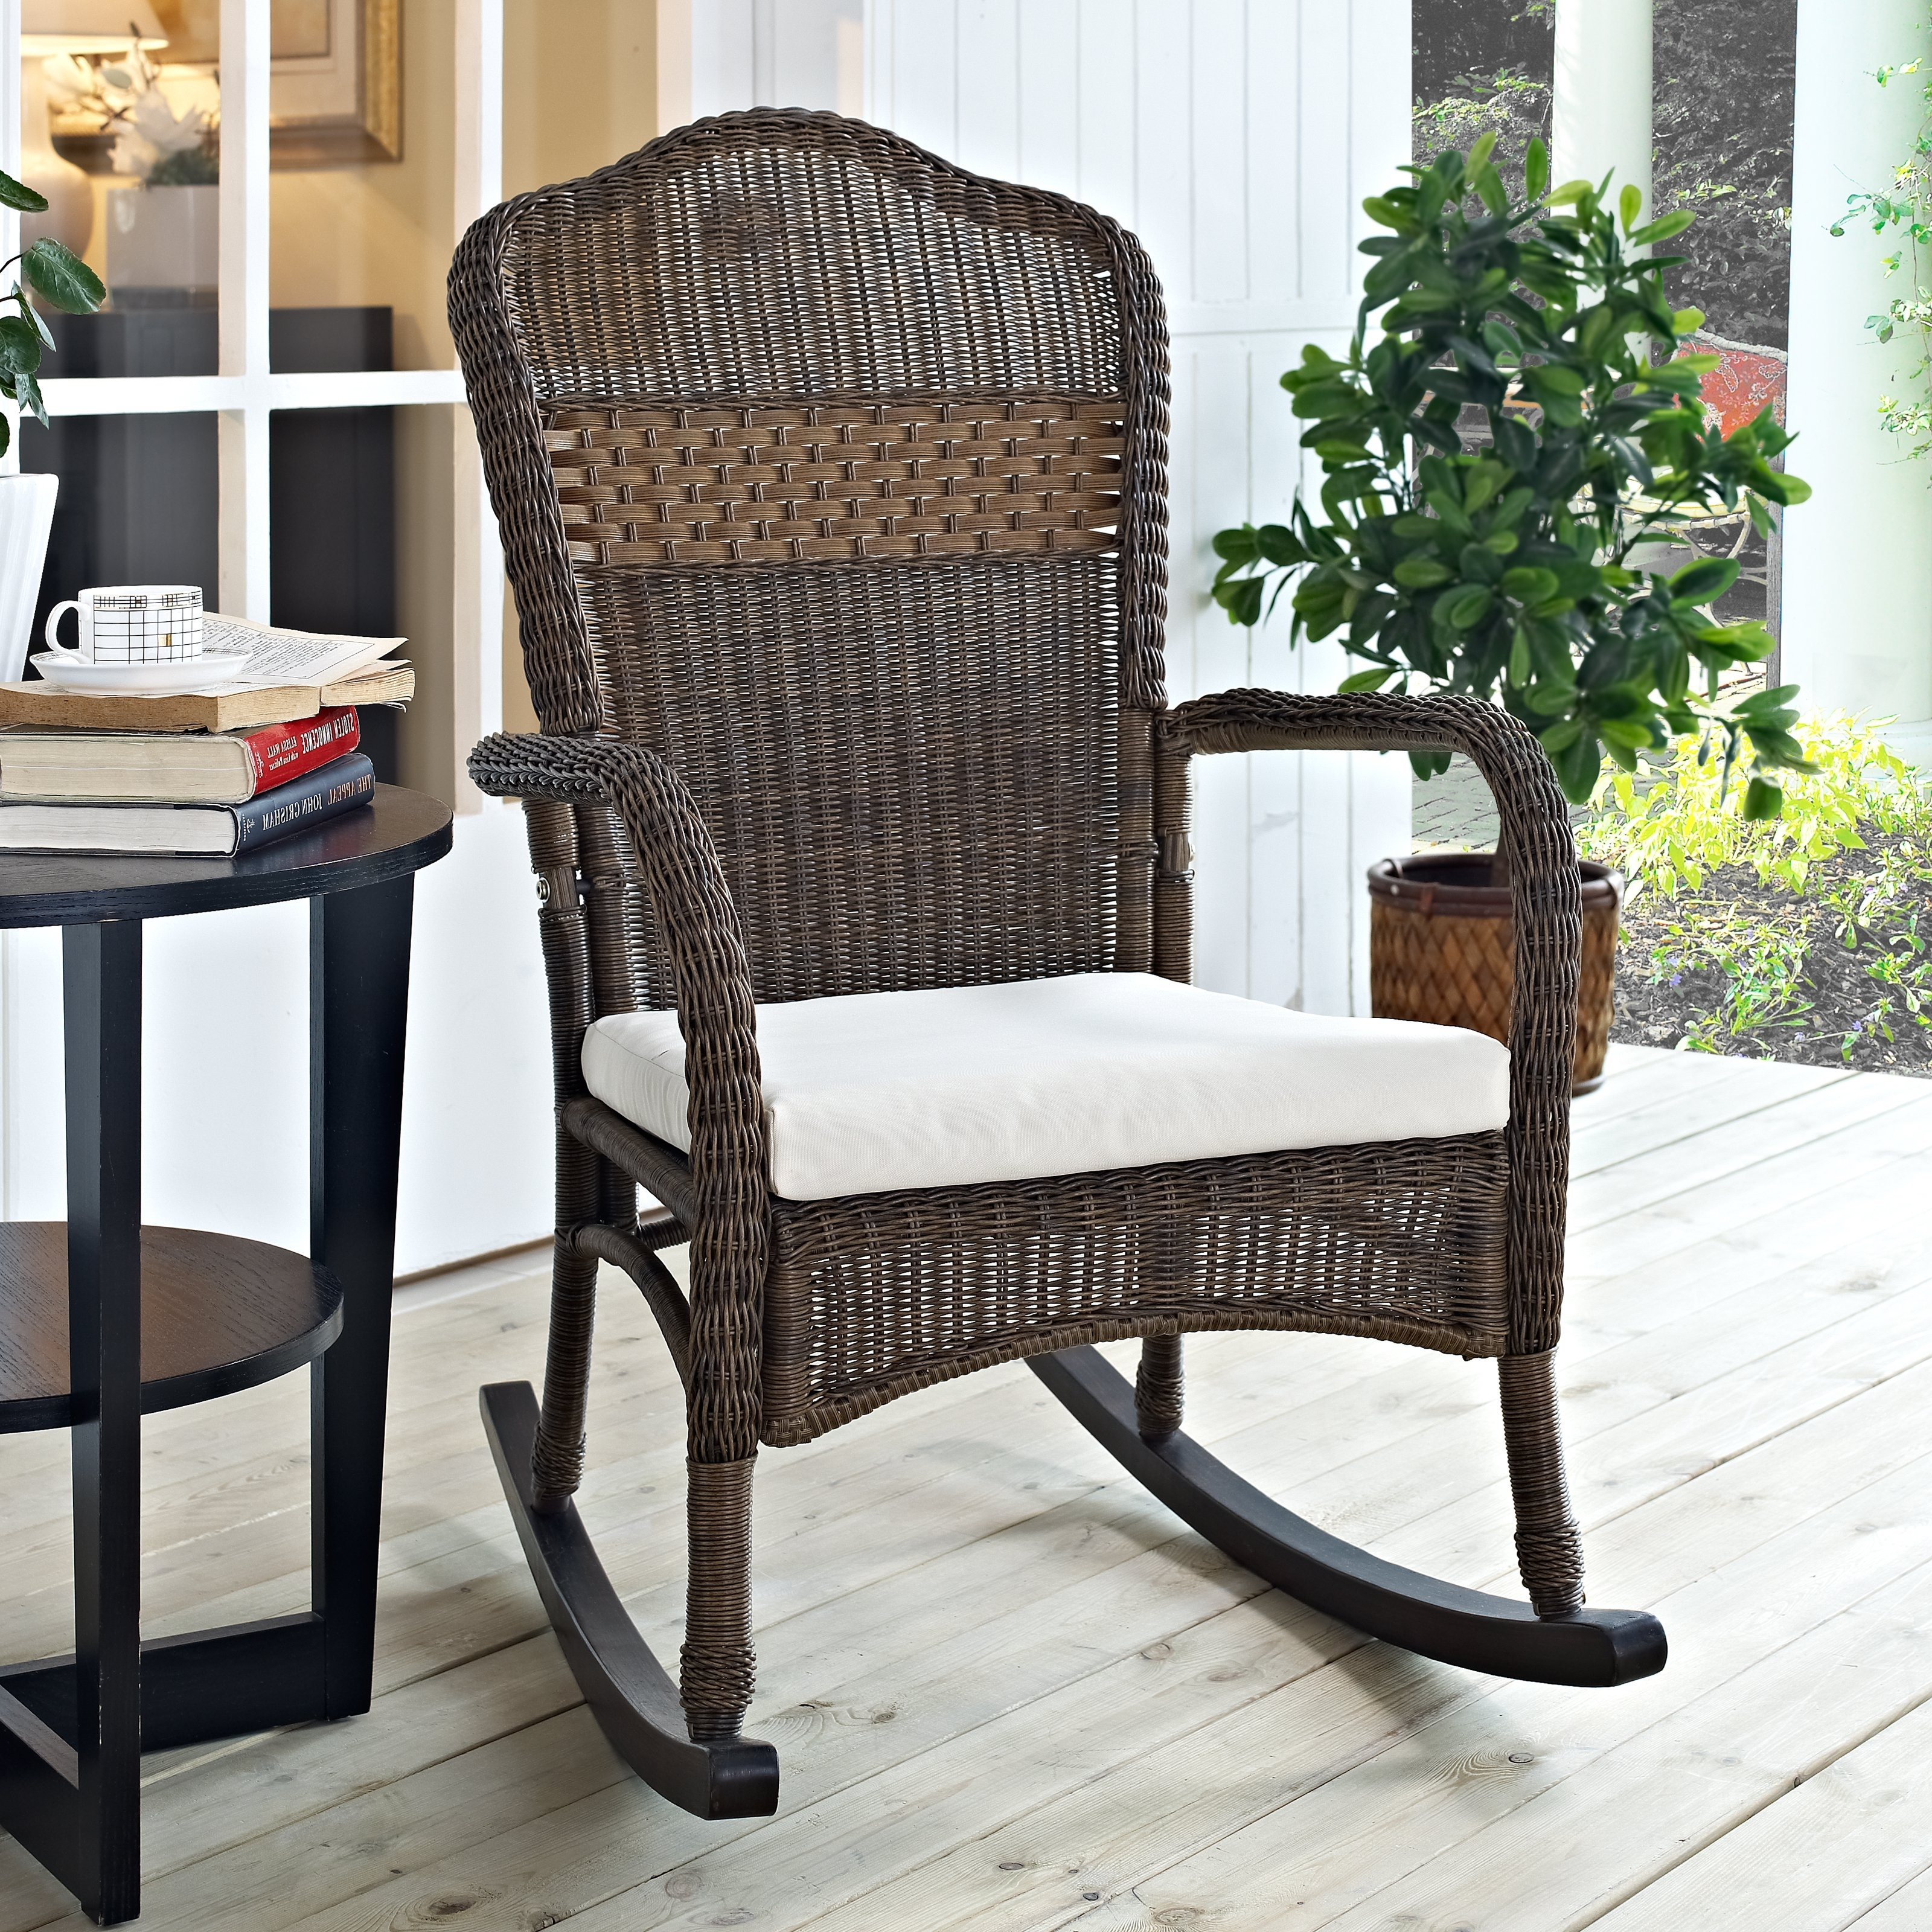 Newest Best Outdoor Porch Rocking Chairs – Outdoor Designs For Patio Furniture Rocking Benches (View 11 of 15)